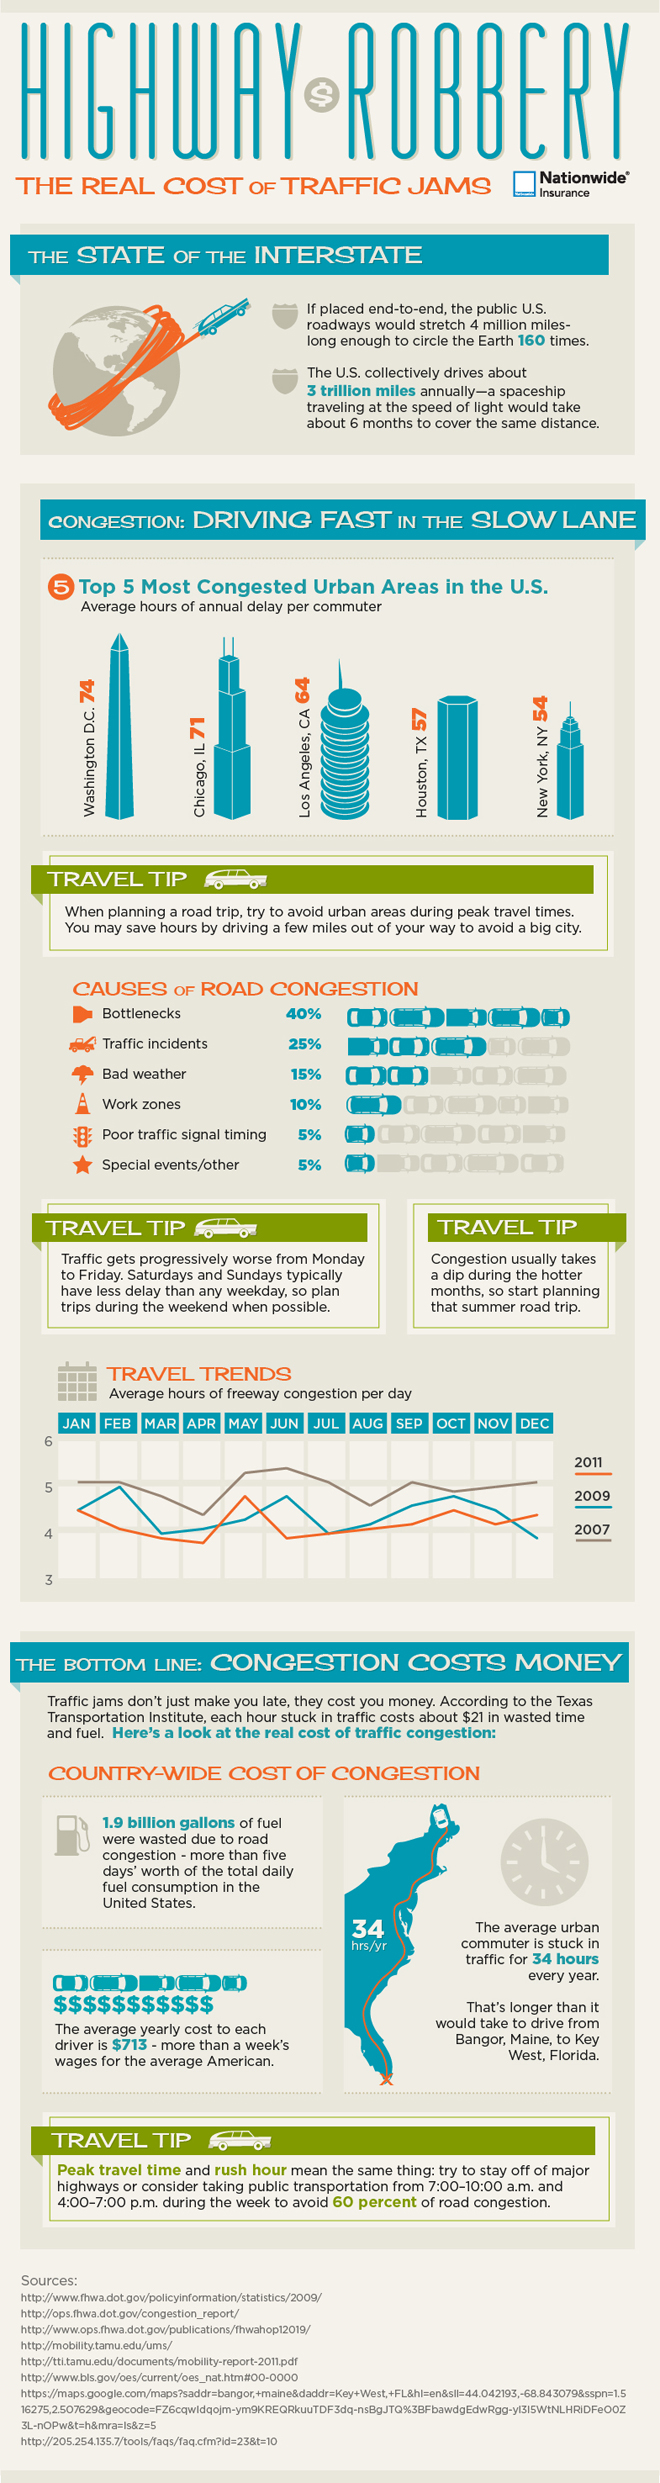 Traffic Jams and Commuting Statistics